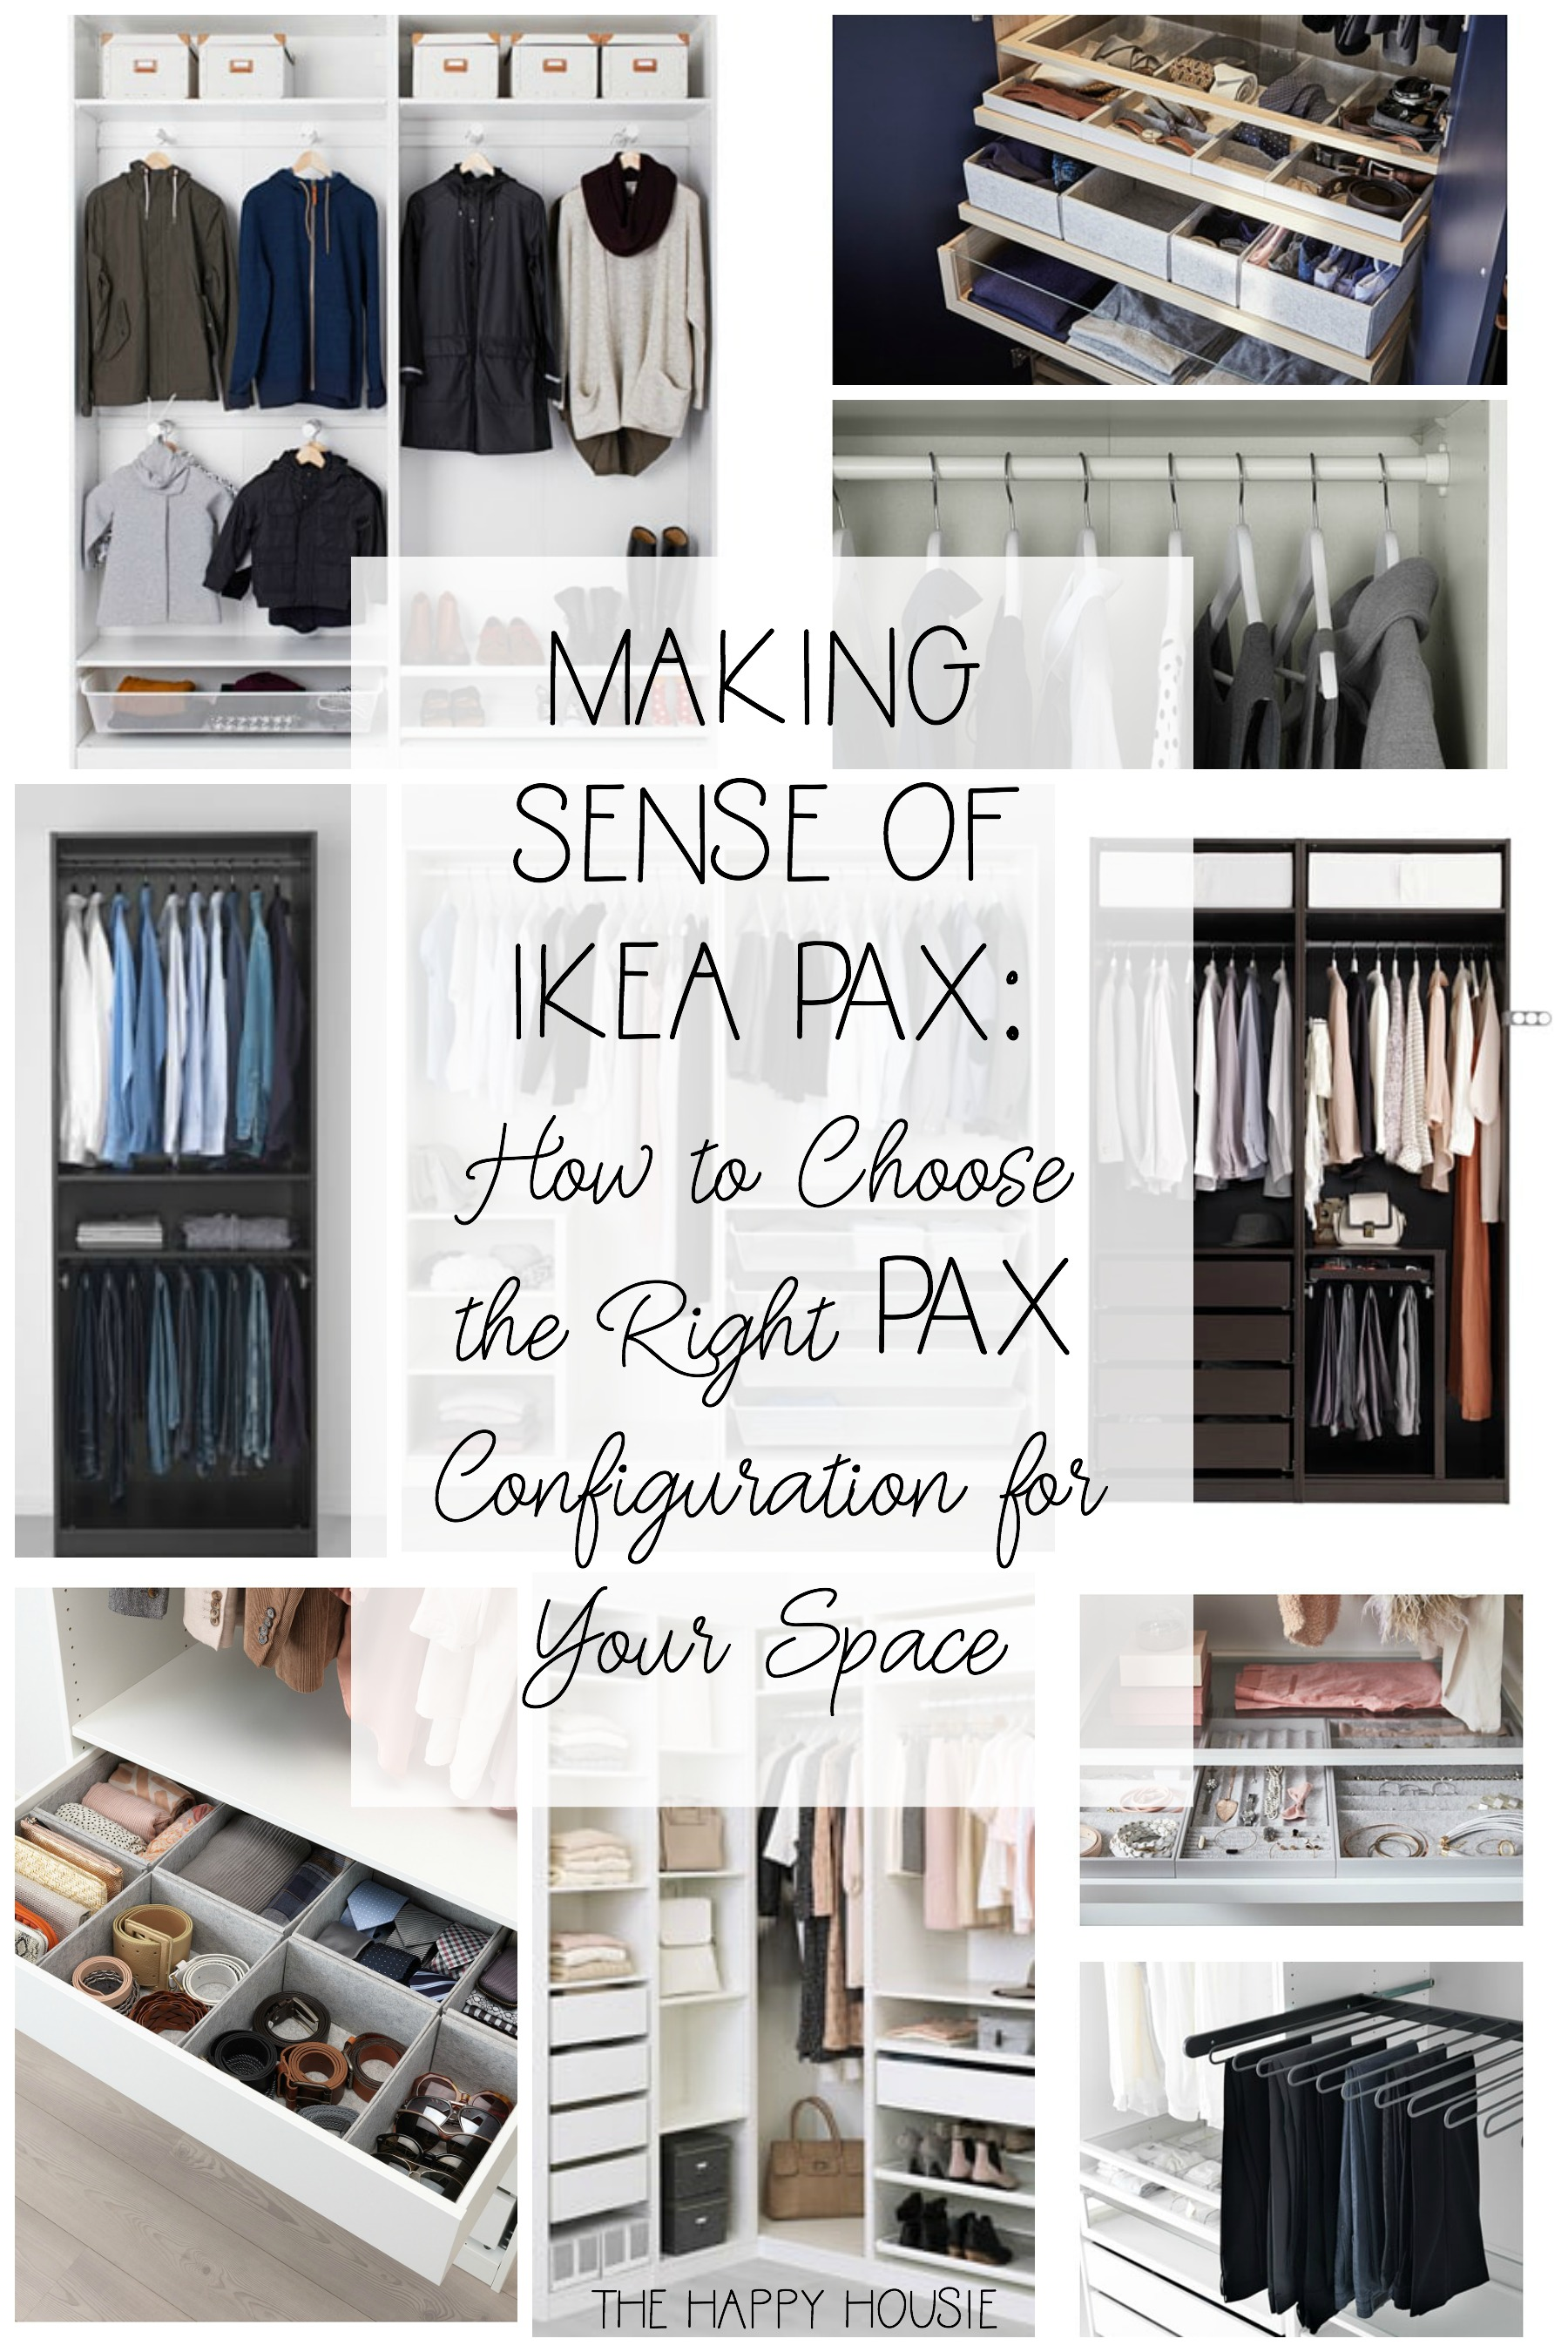 Ikea Wardrobe Tidy Making Sense Of Ikea Pax How To Choose The Right Pax